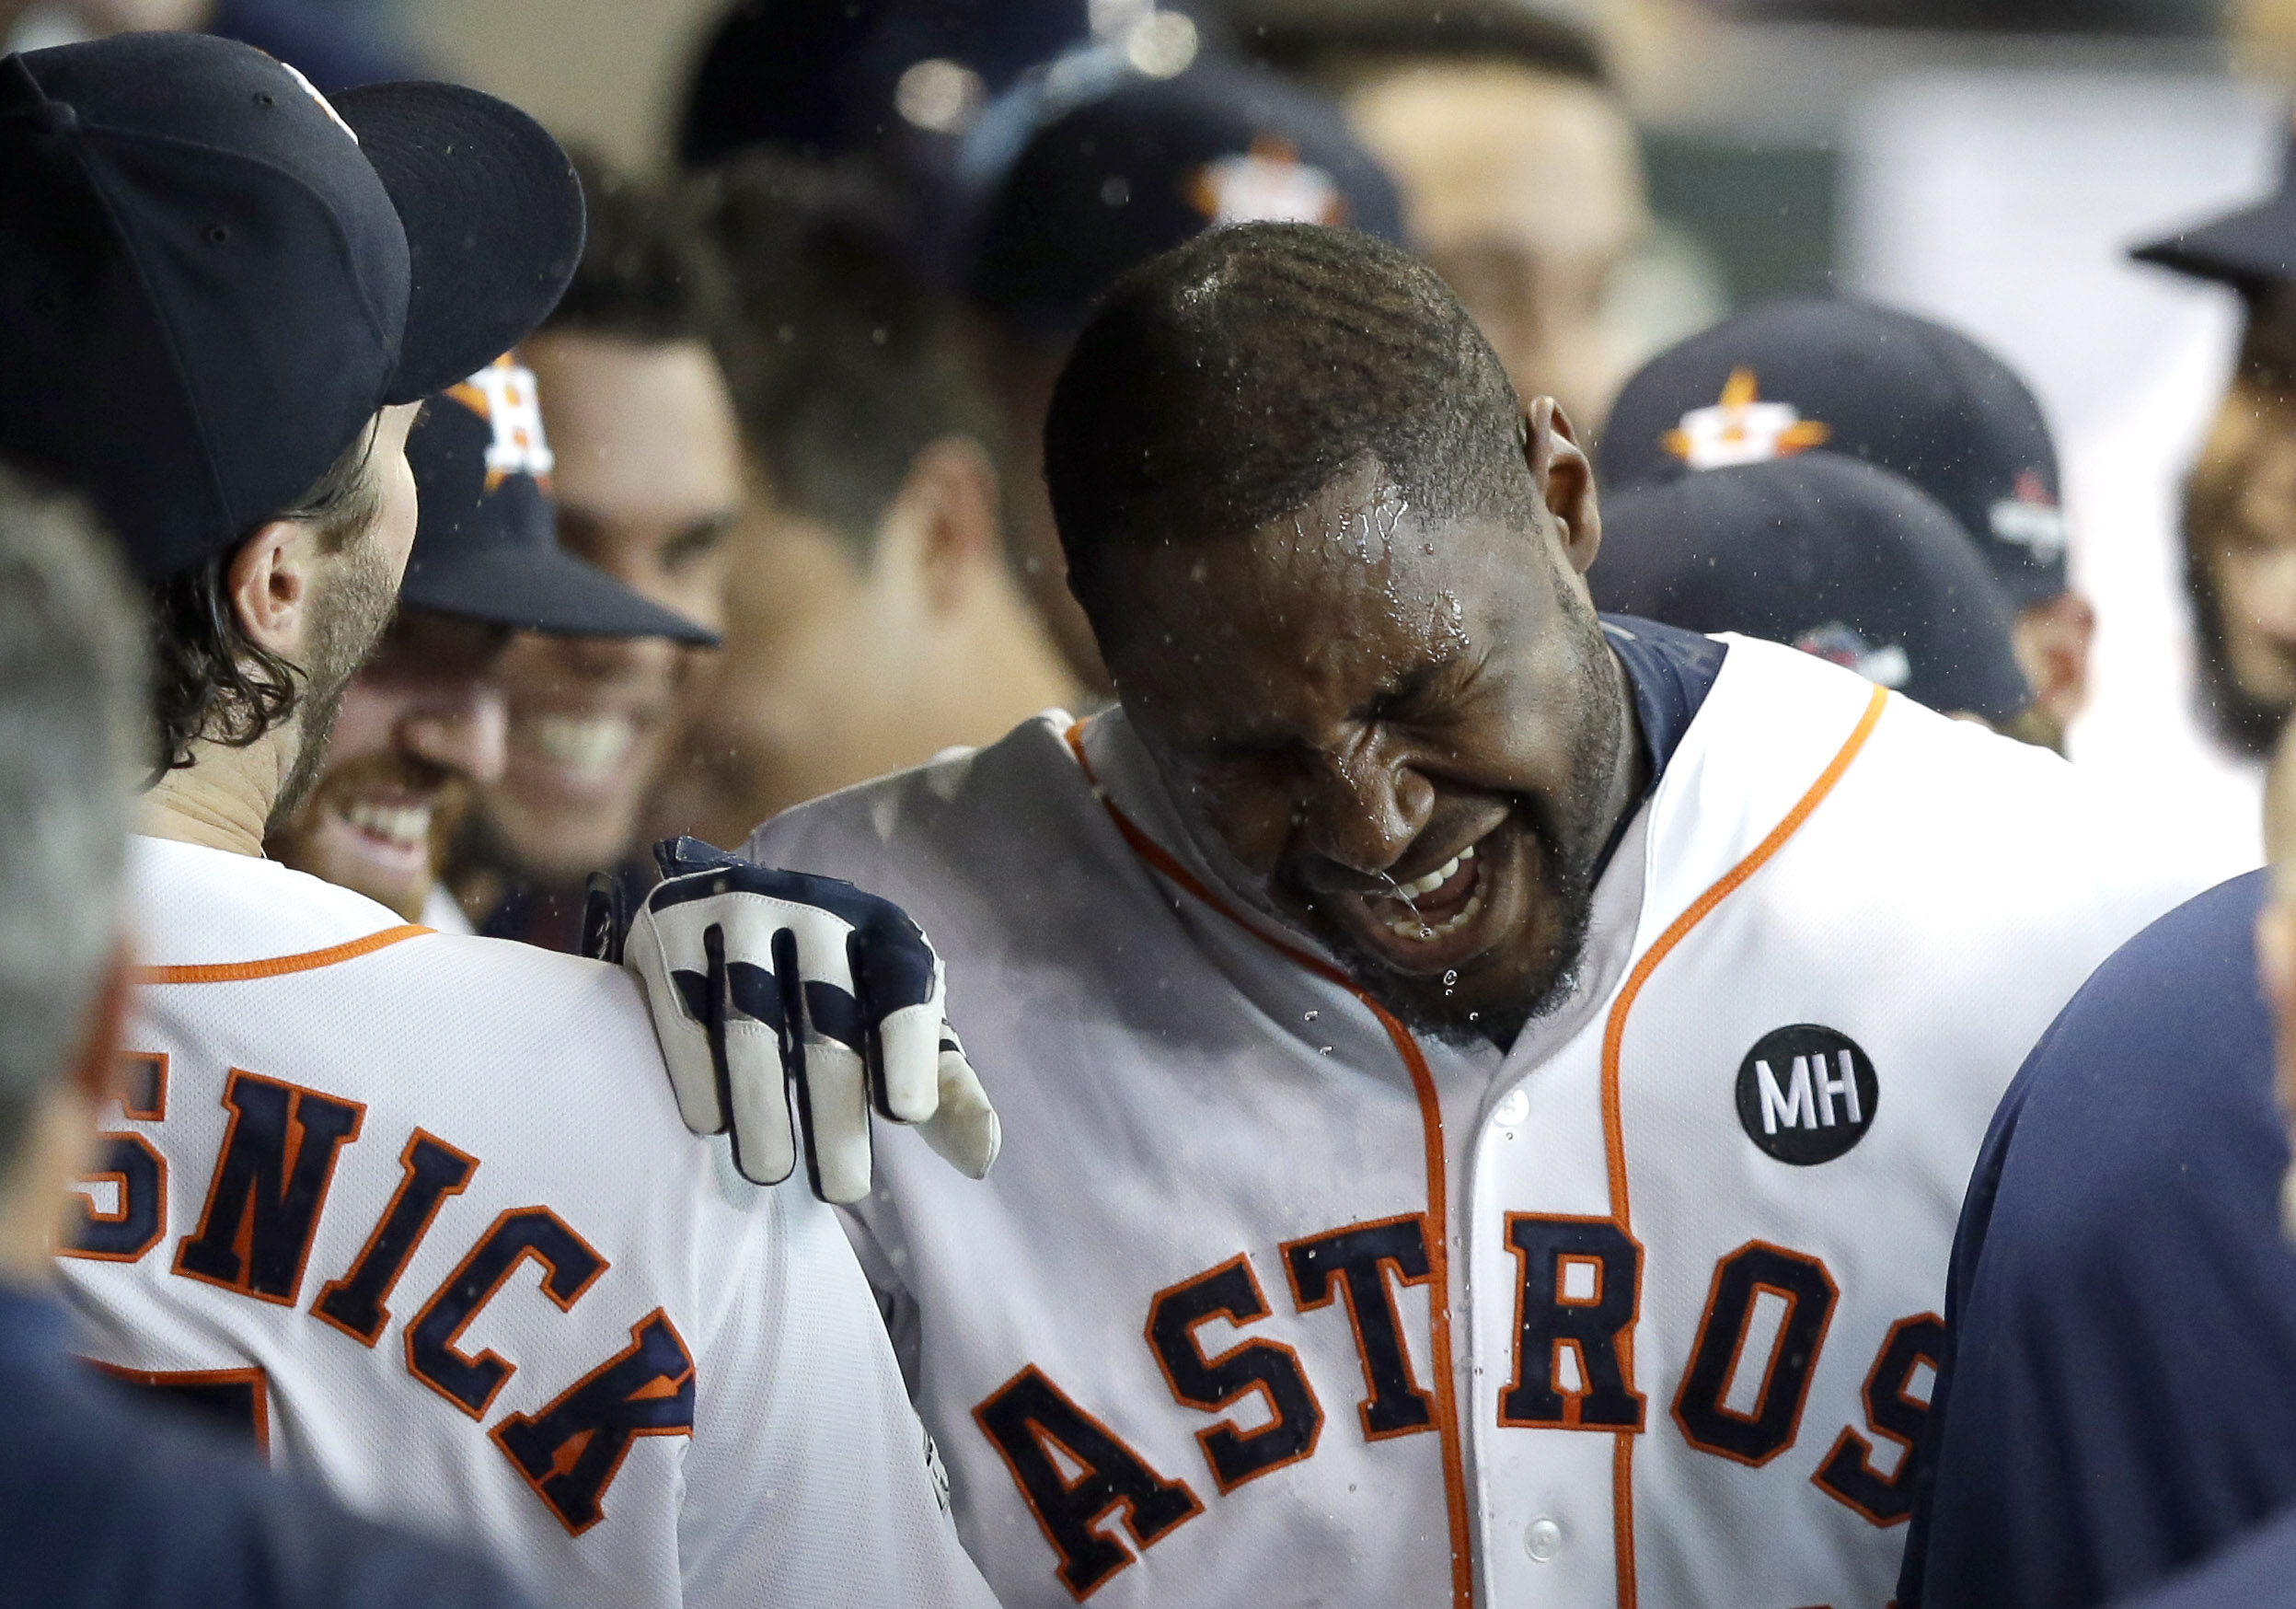 Houston Astros' Chris Carter is splashed with water in the dugout after hitting a home run against the Kansas City Royals during the seventh inning in Game 3 of baseball's American League Division Series Sunday, Oct. 11, 2015, in Houston. (AP Photo/Pat Su